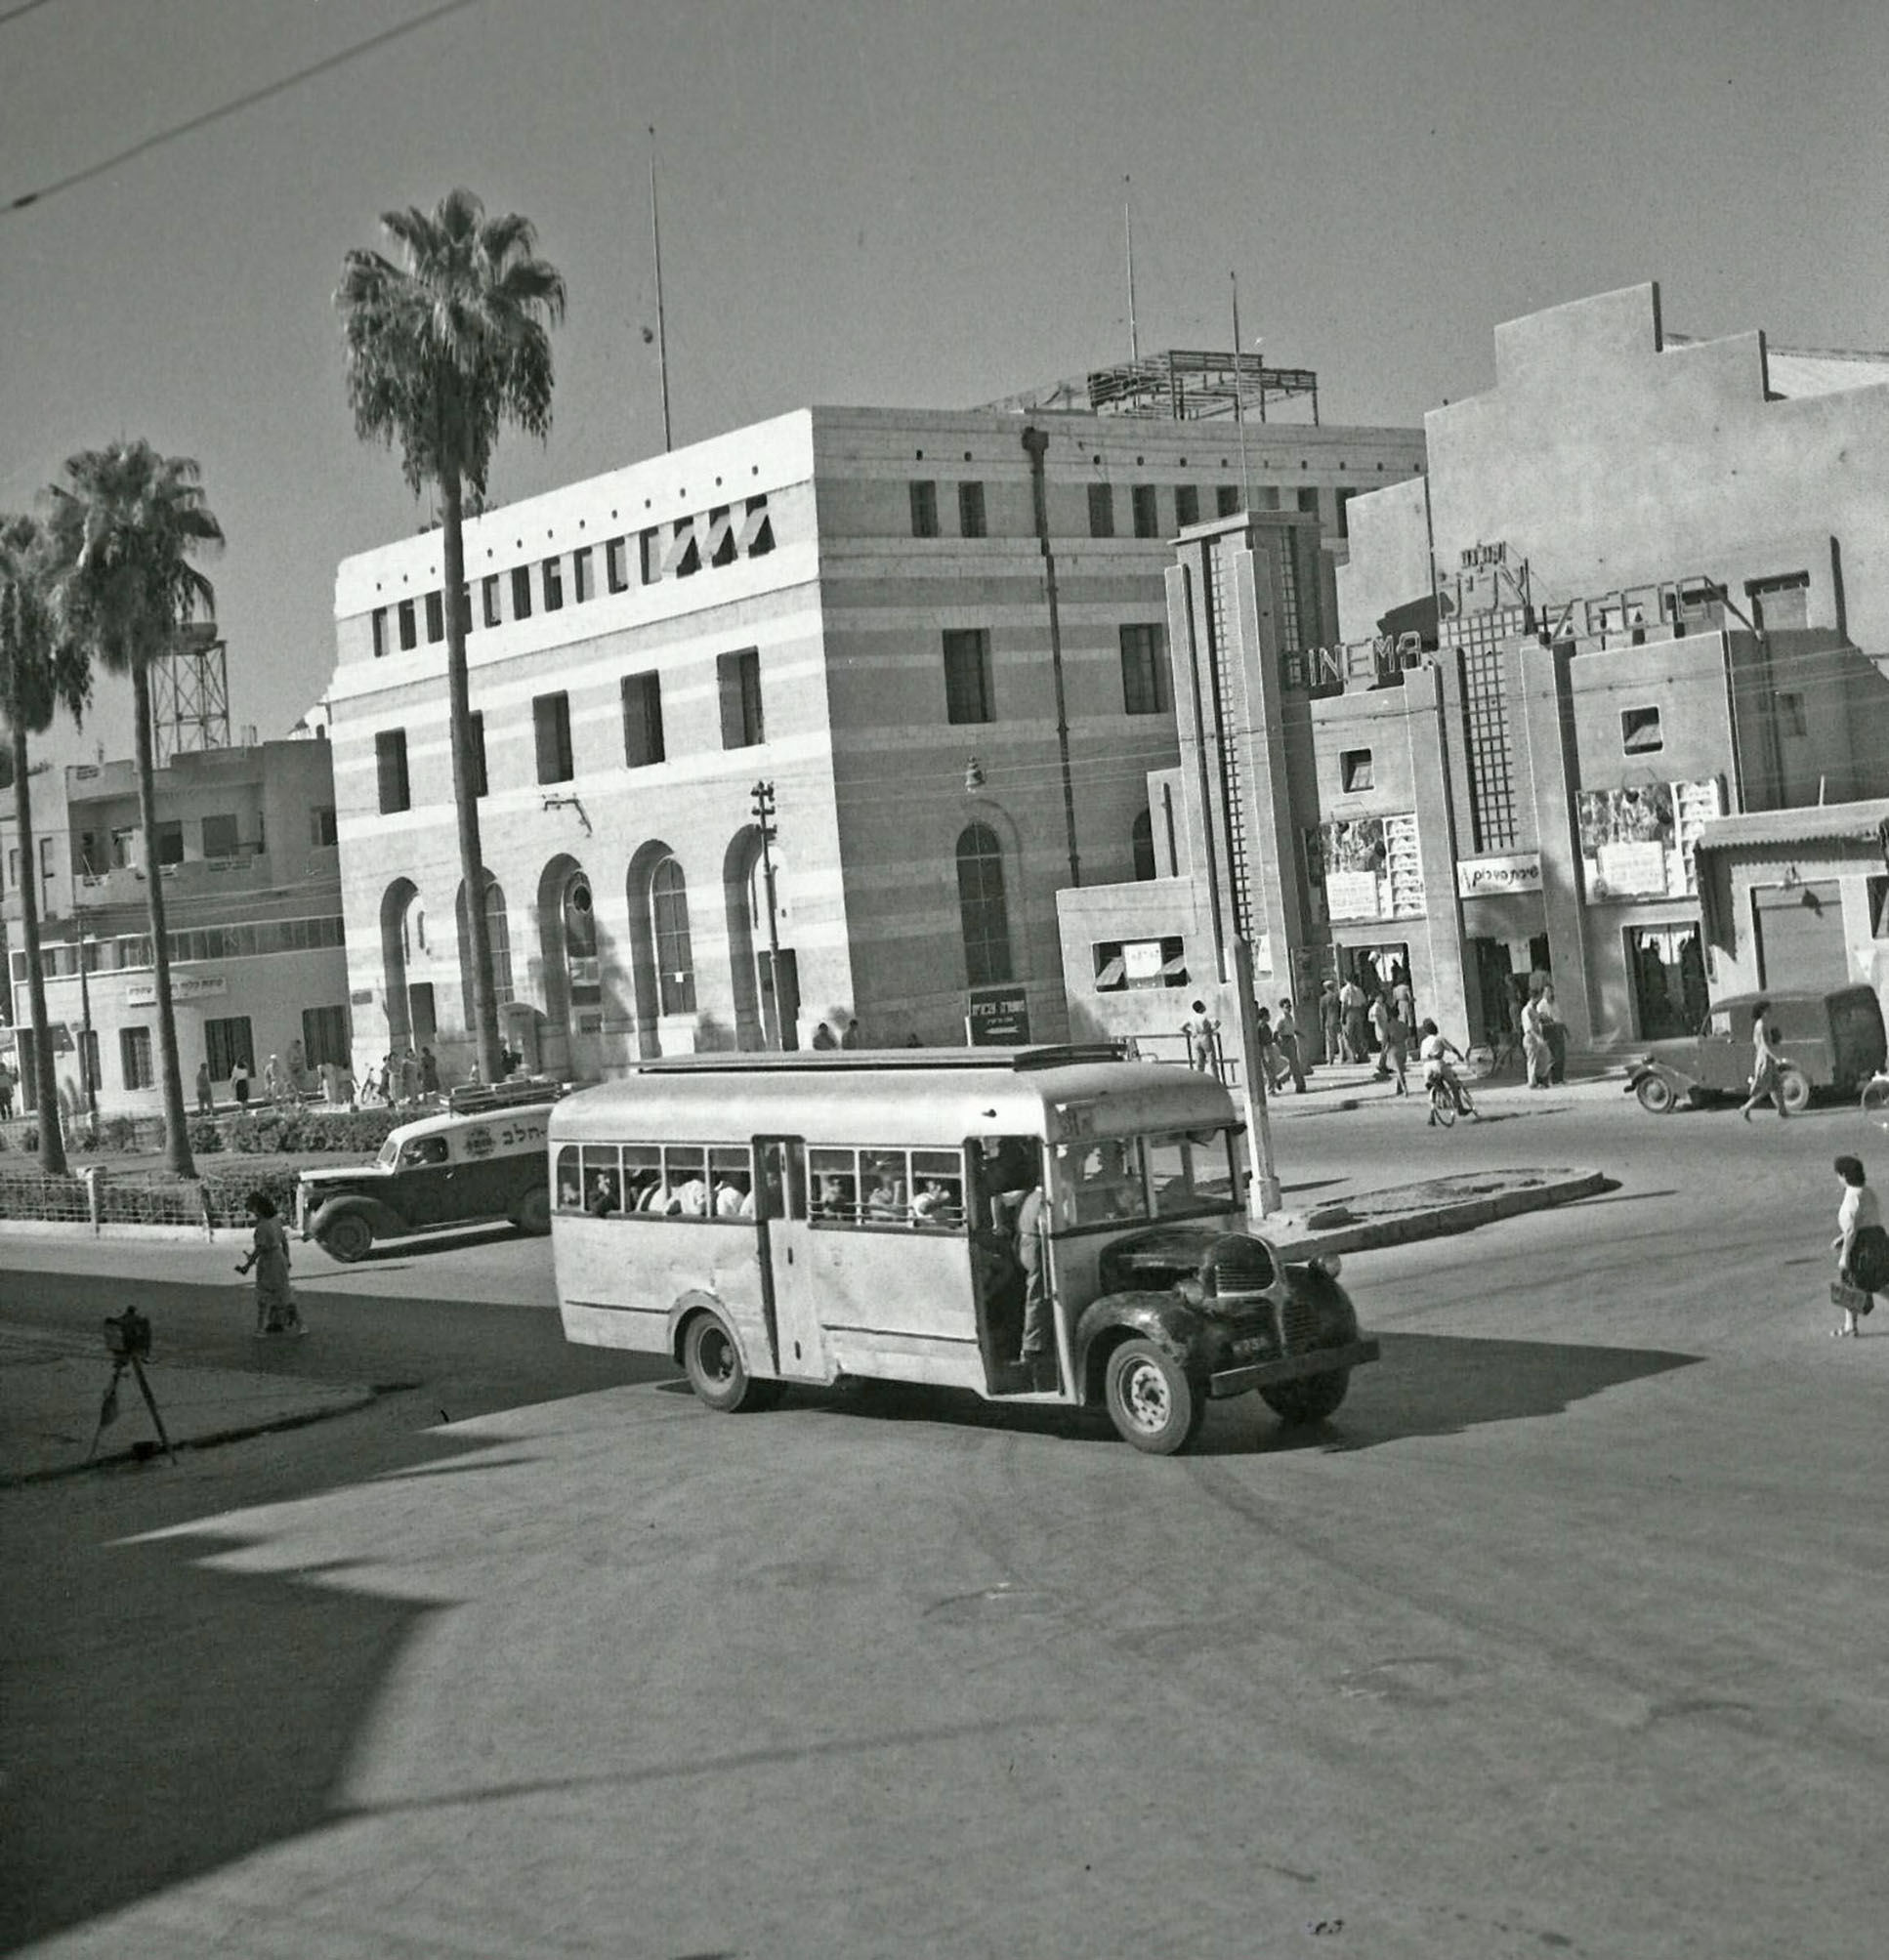 Denning double decker for sale - A War Weary Dodge In An Israeli Town Haifa Or Jaffa Can T Be Certain Pic Courtesy Of Dr Eviatar Reiter